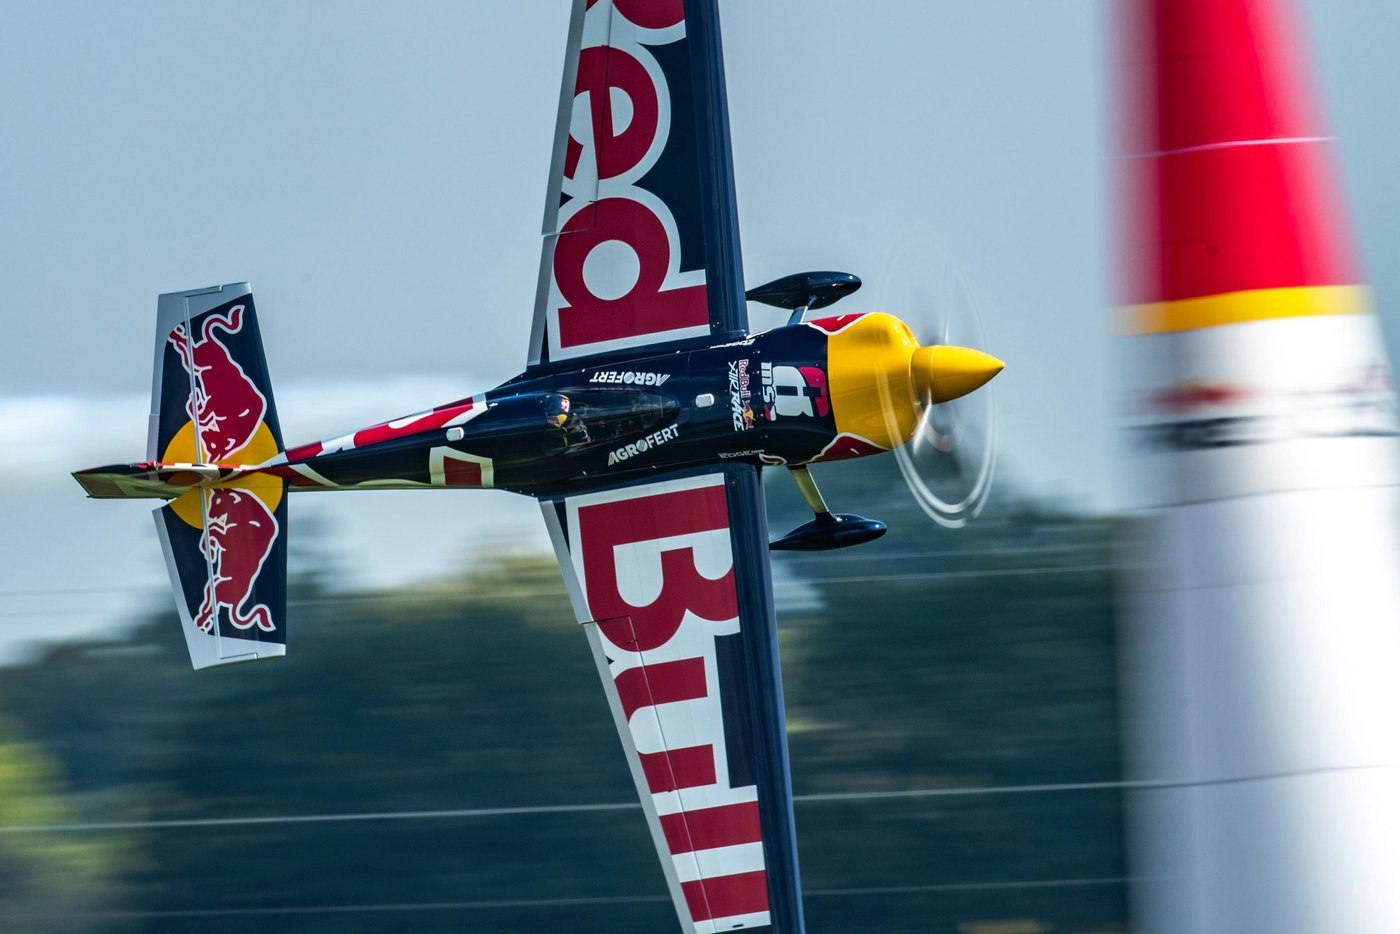 Airrace Indianapolis